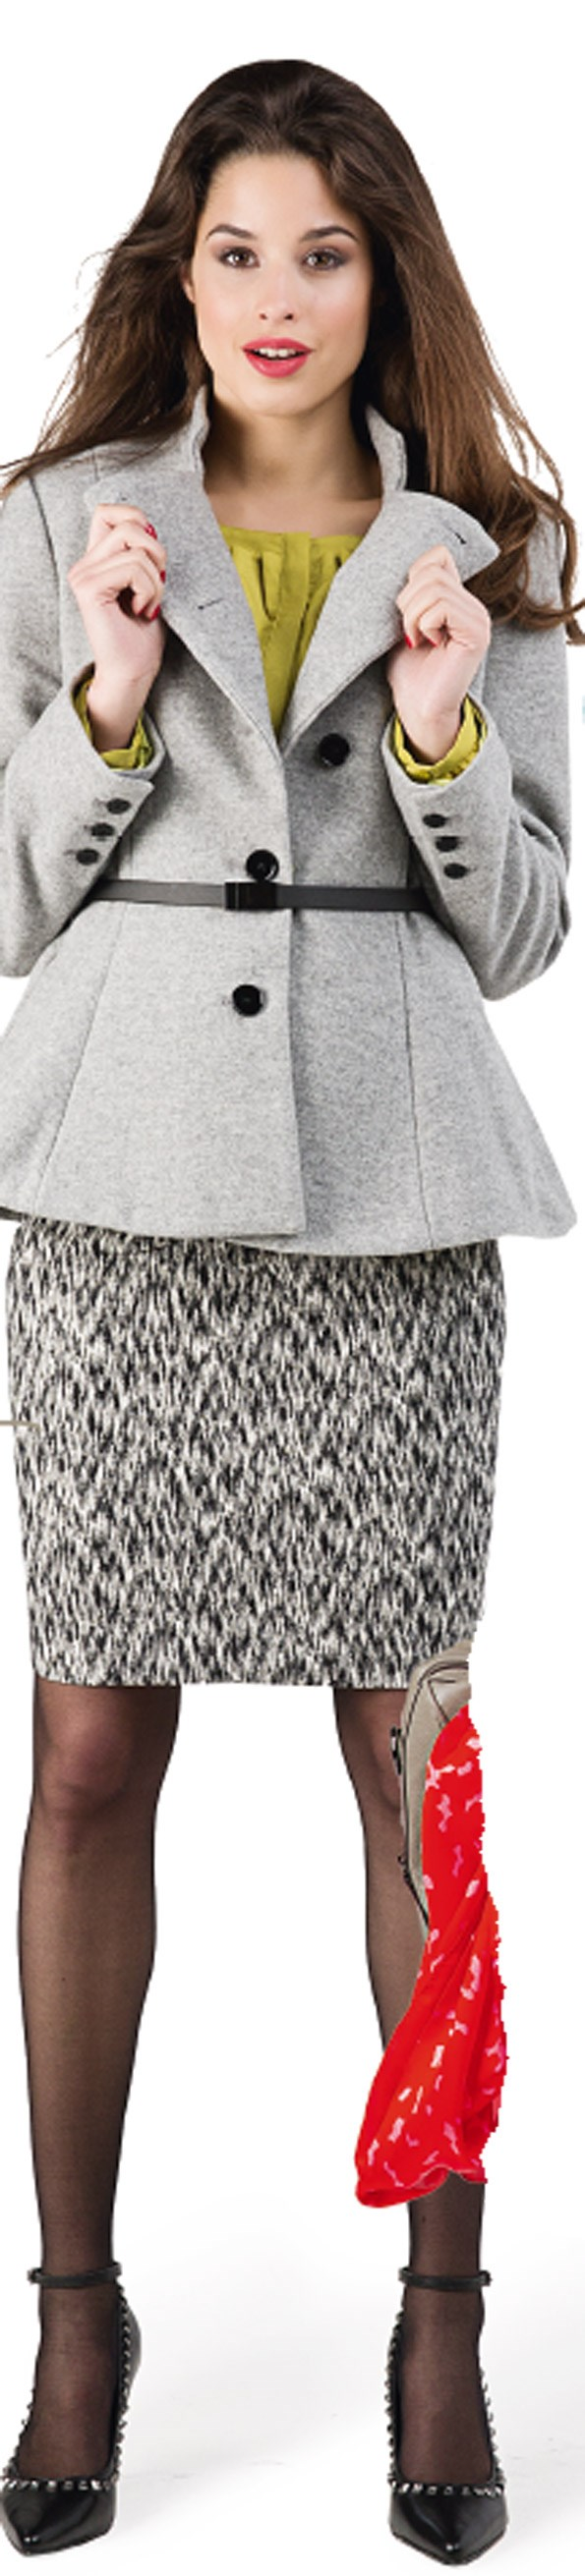 Pencil Skirt - WORK Ruffle neck blouse $149 from Esprit. Wool jacket $329 from Esprit. 15 Denier tights $24.95 from Farmers. Adele heel $179.90 from Overland